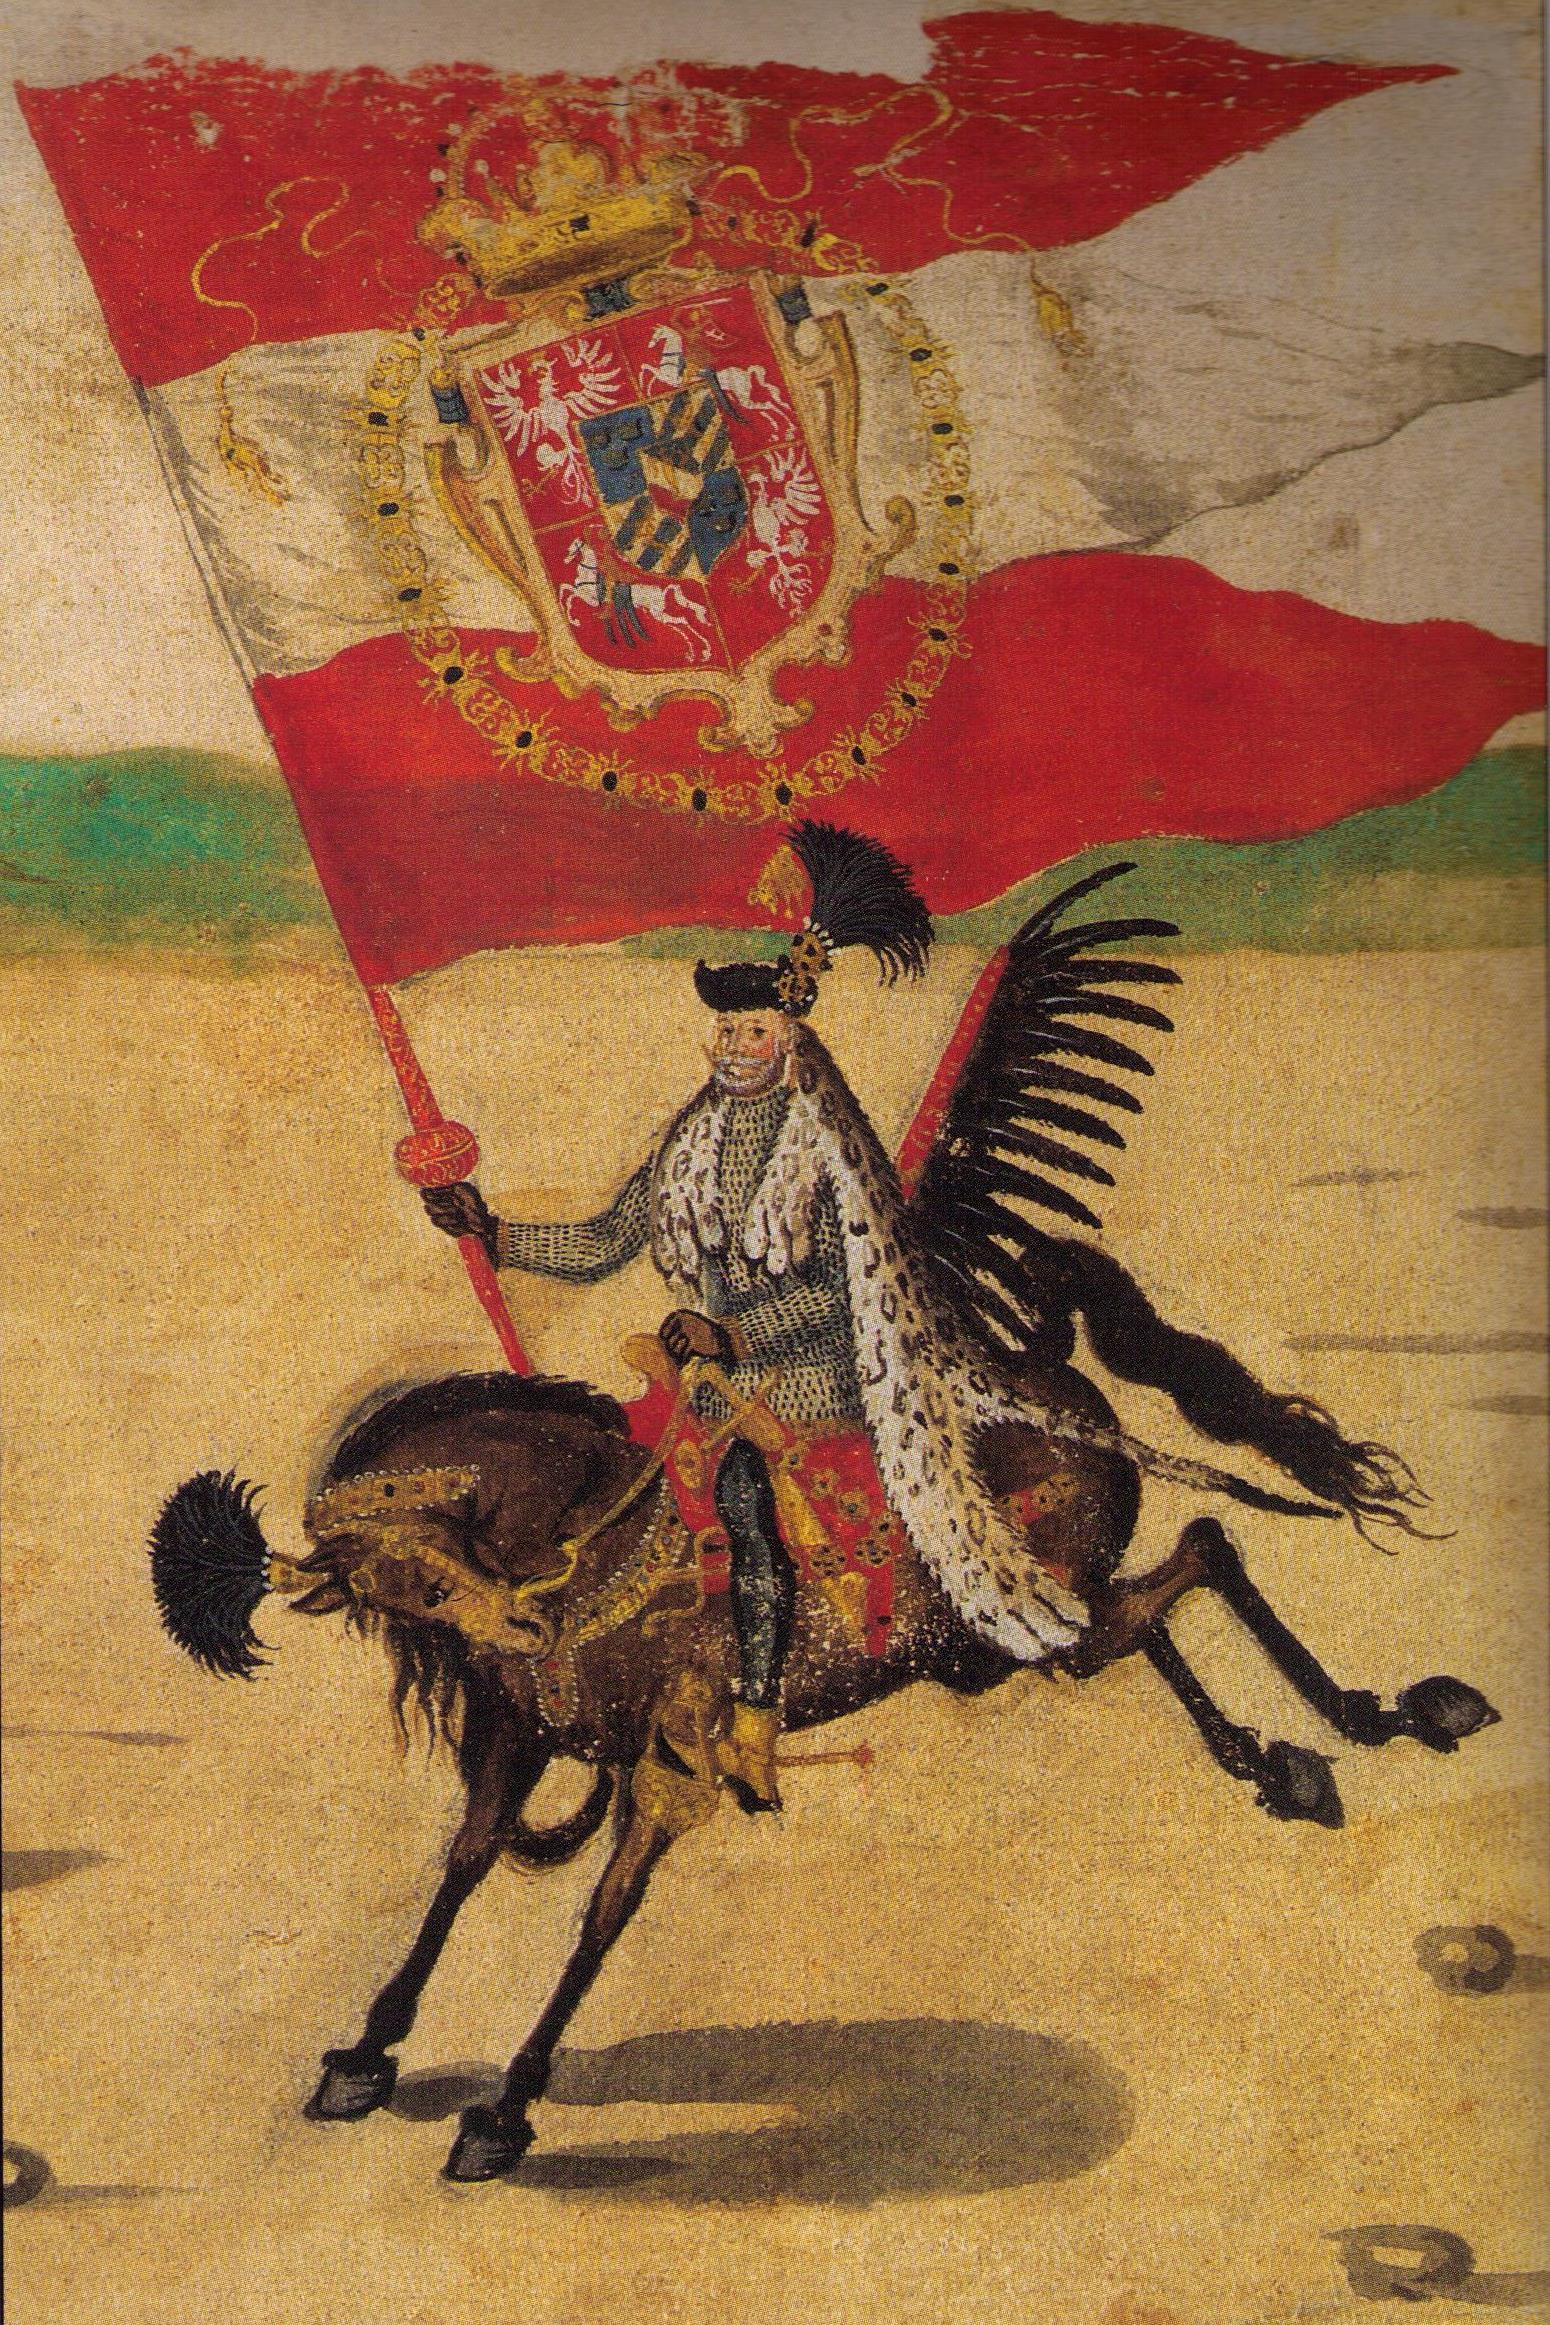 Grand Standard Bearer of the Polish Crown (Chorąży Wielki Koronny), Sebastian Sobieski, at the wedding procession of King Sigismund III of Poland and Sweden, as painted anonymously on the Stockholm Roll (c. 1605).